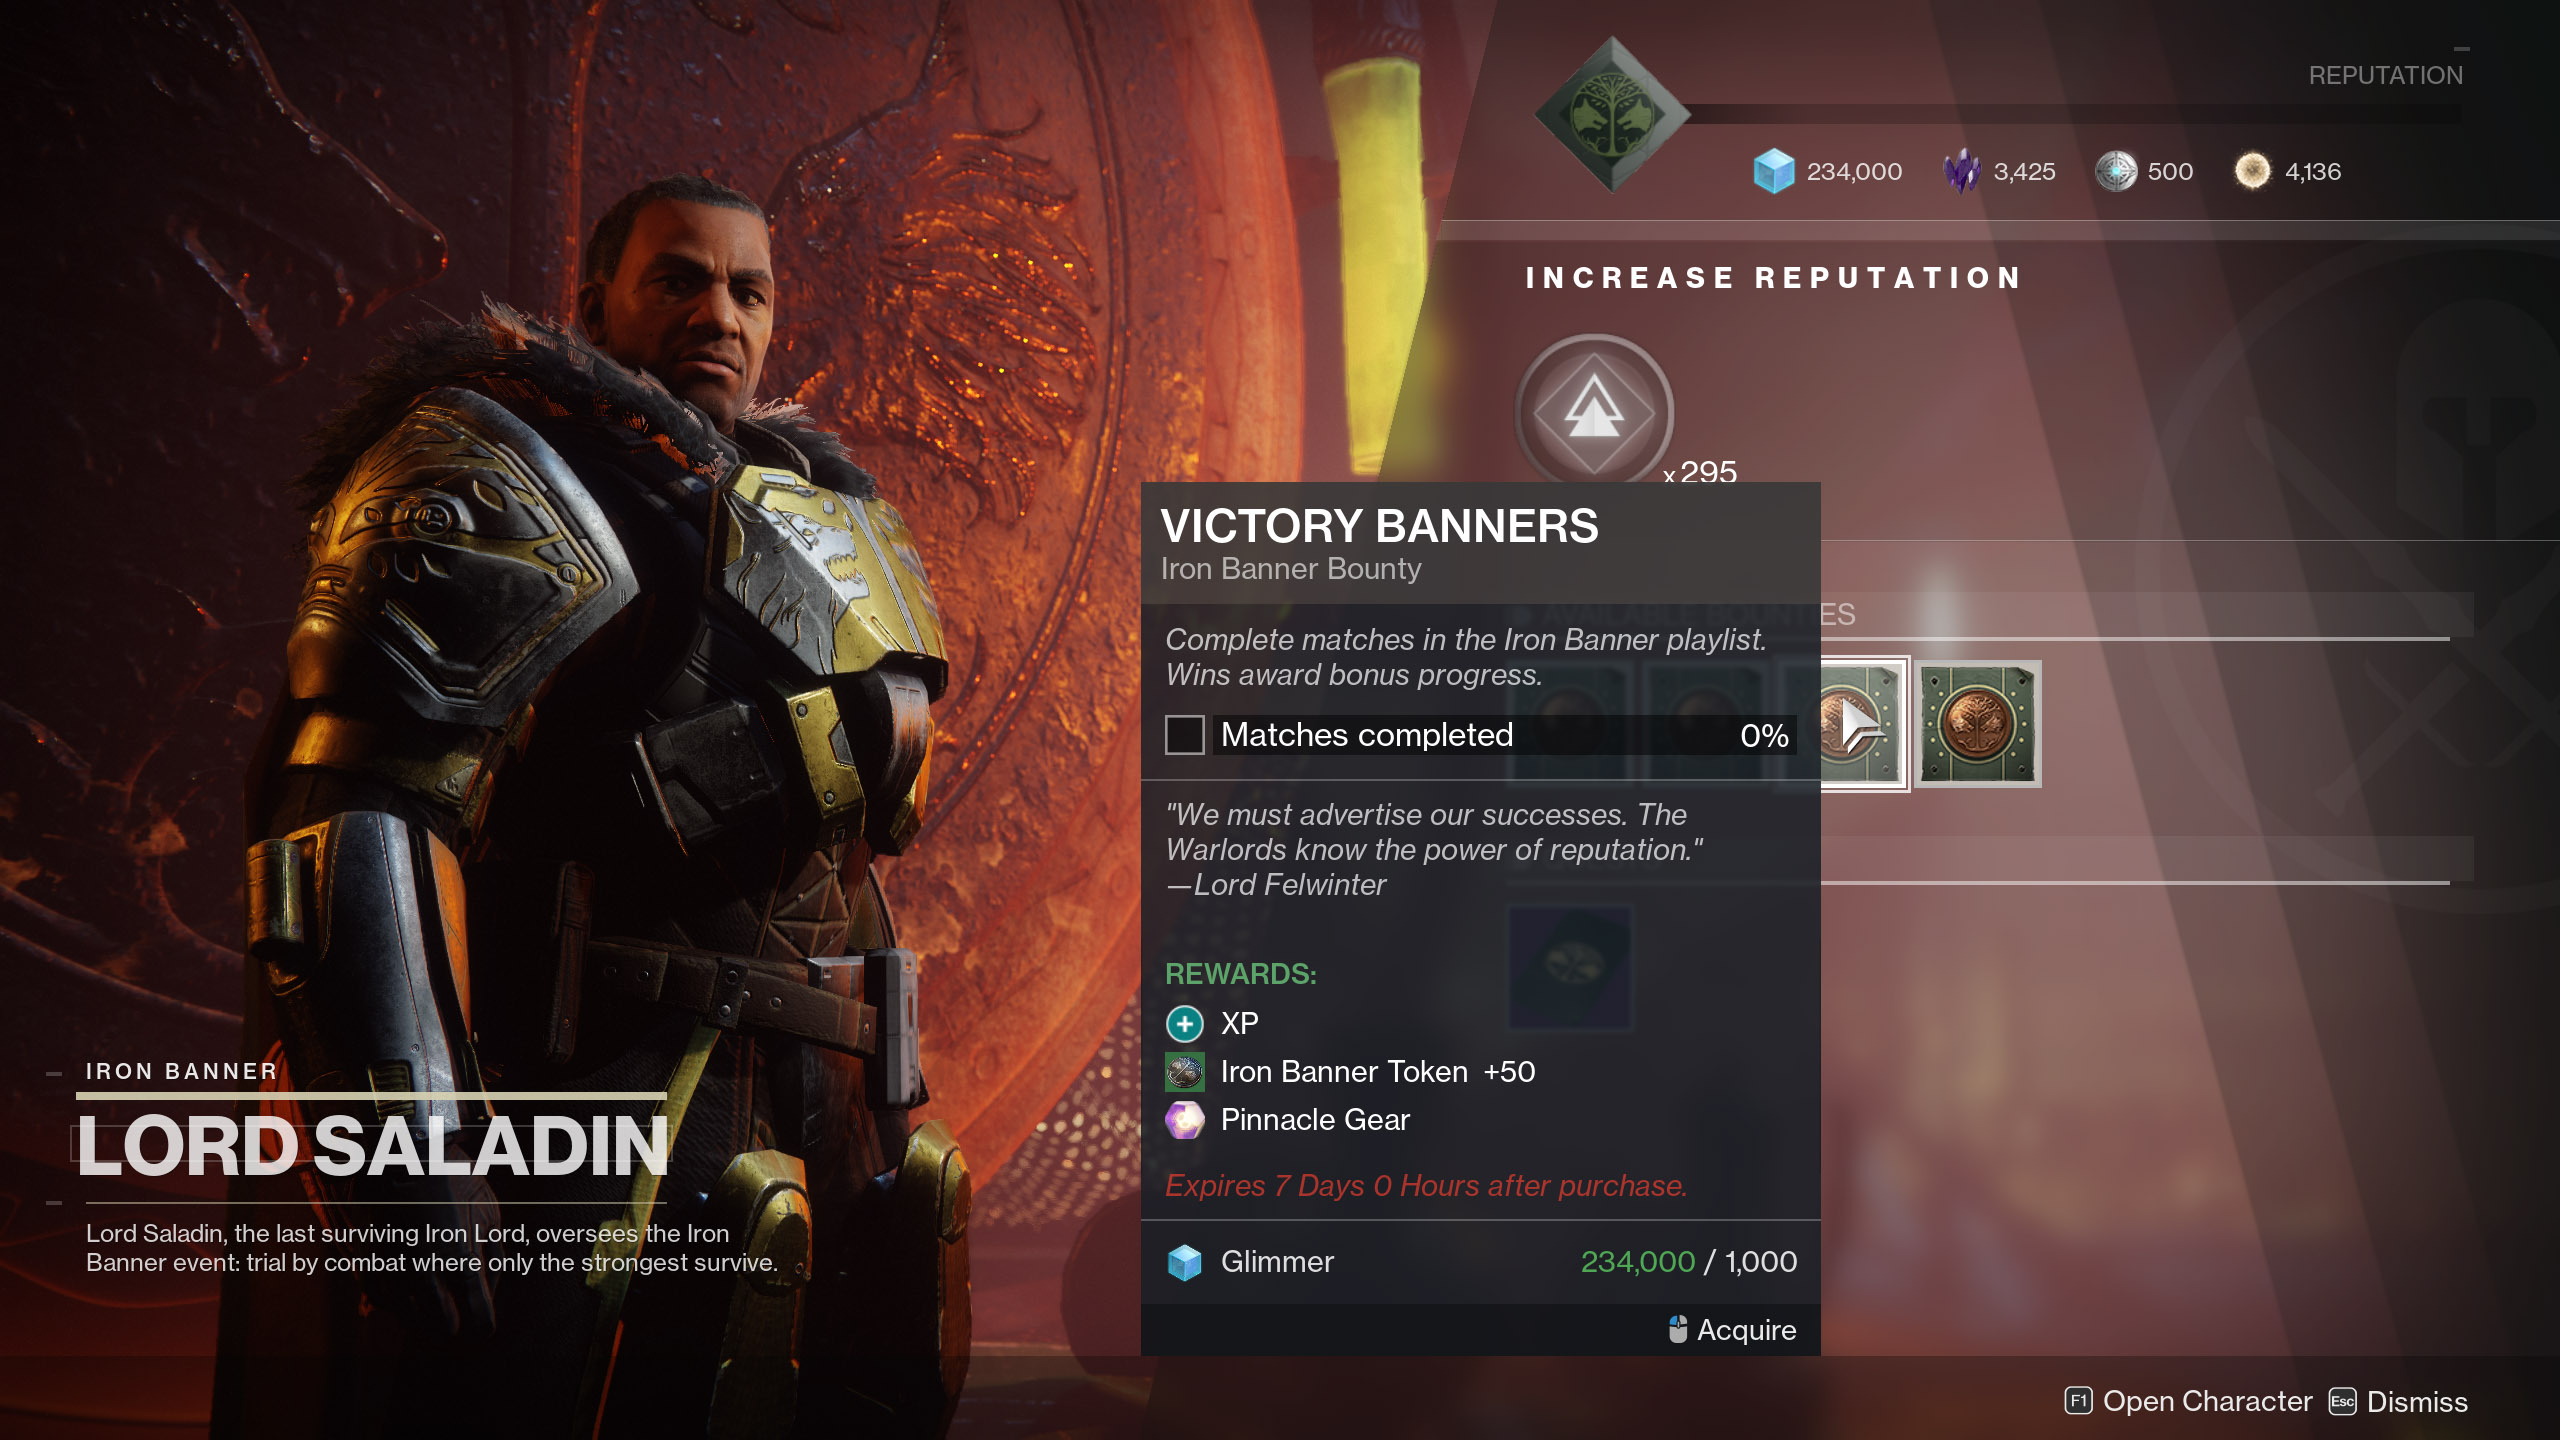 Victory Banners Iron Banner Bounty